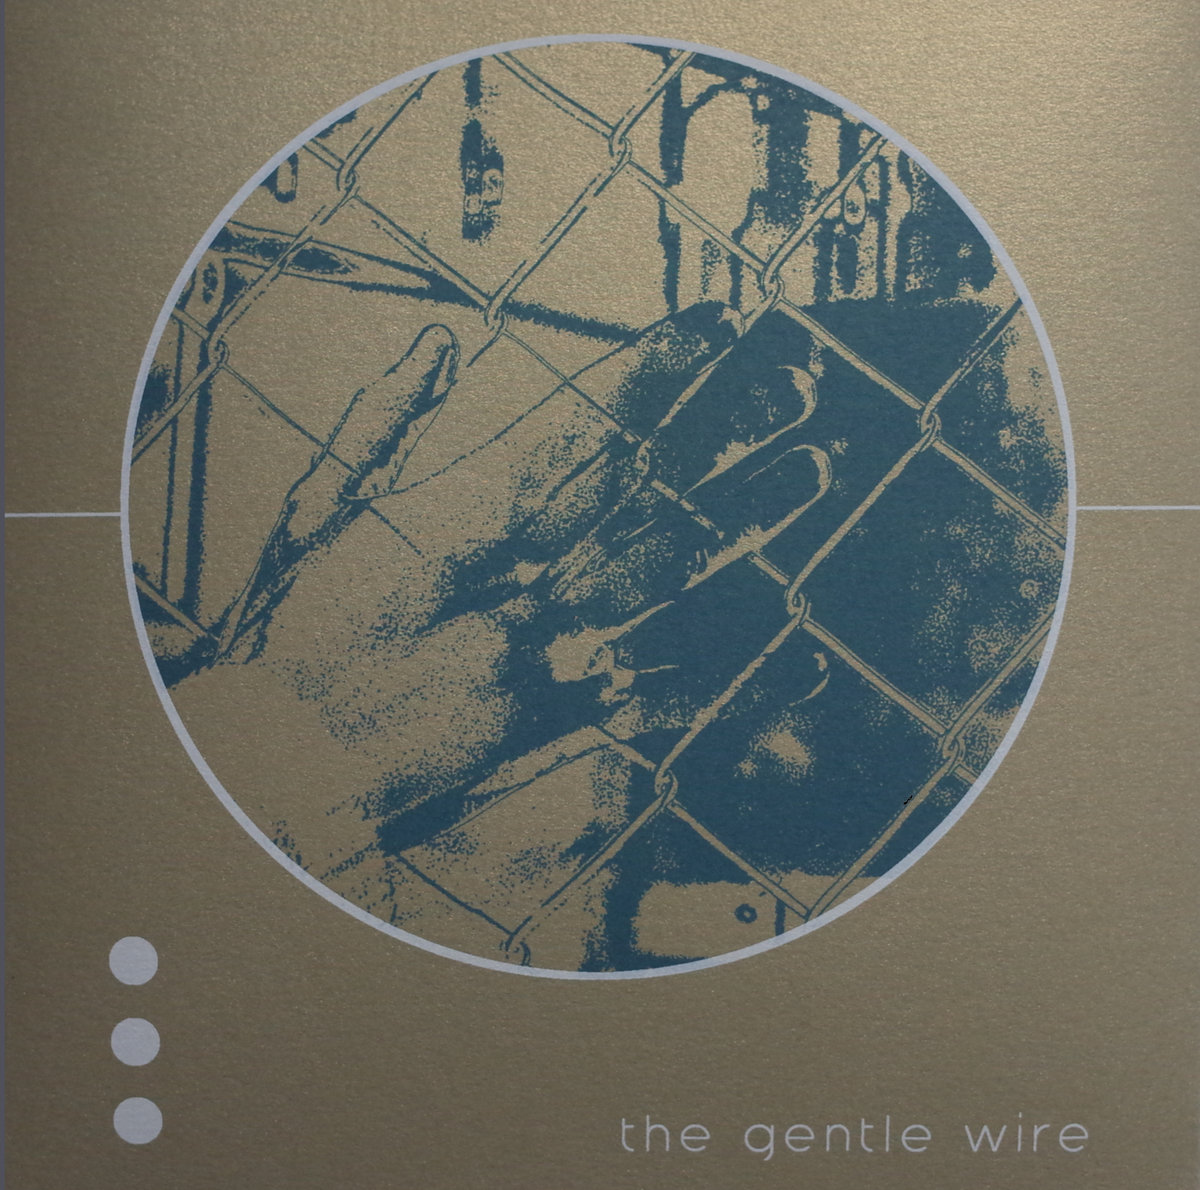 portada del album The Gentle Wire